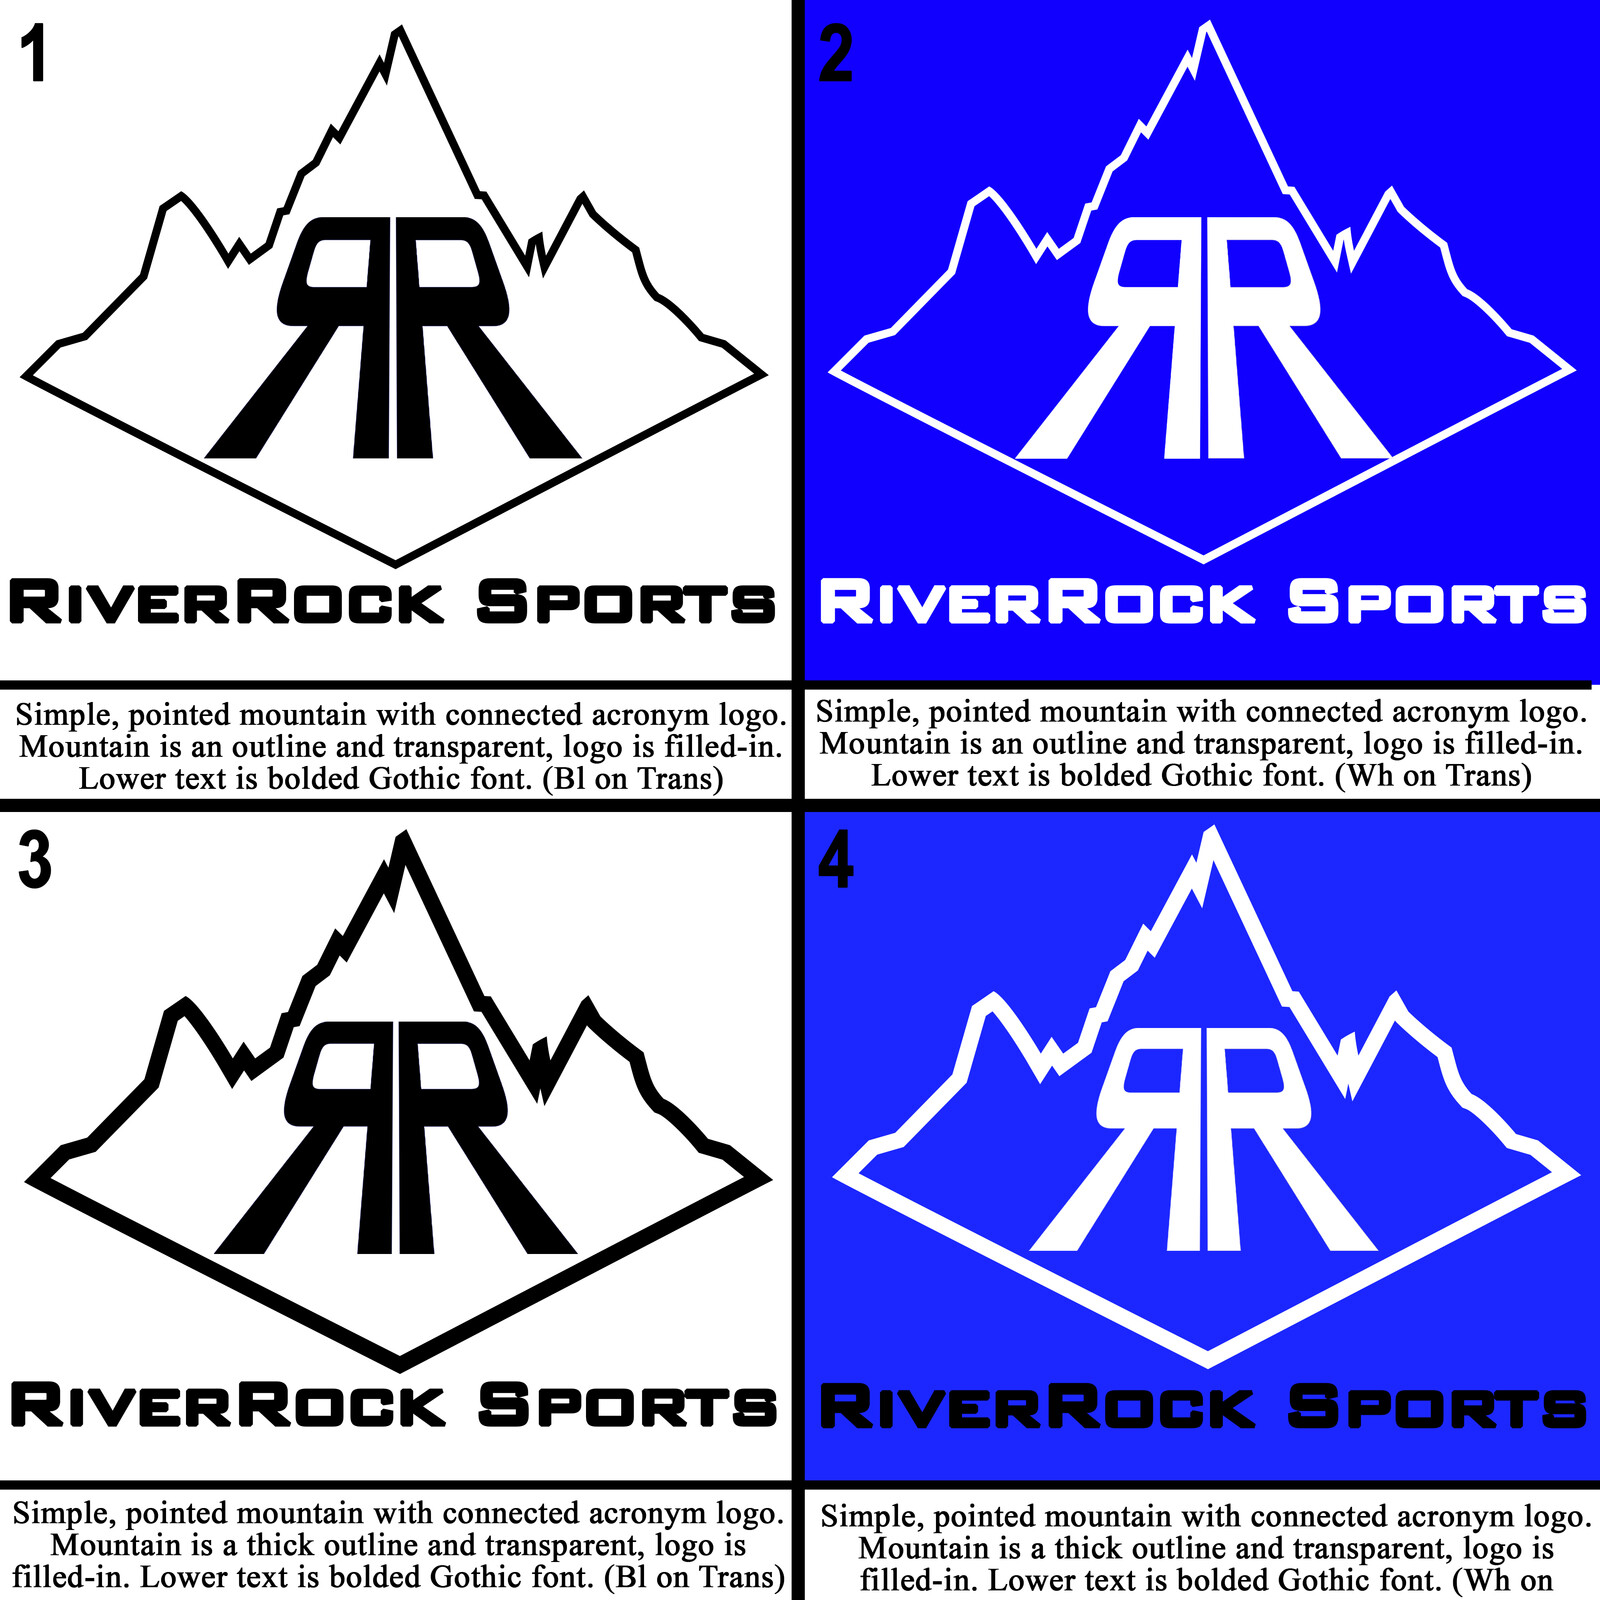 The second batch of concept iterations for the RRSM logo